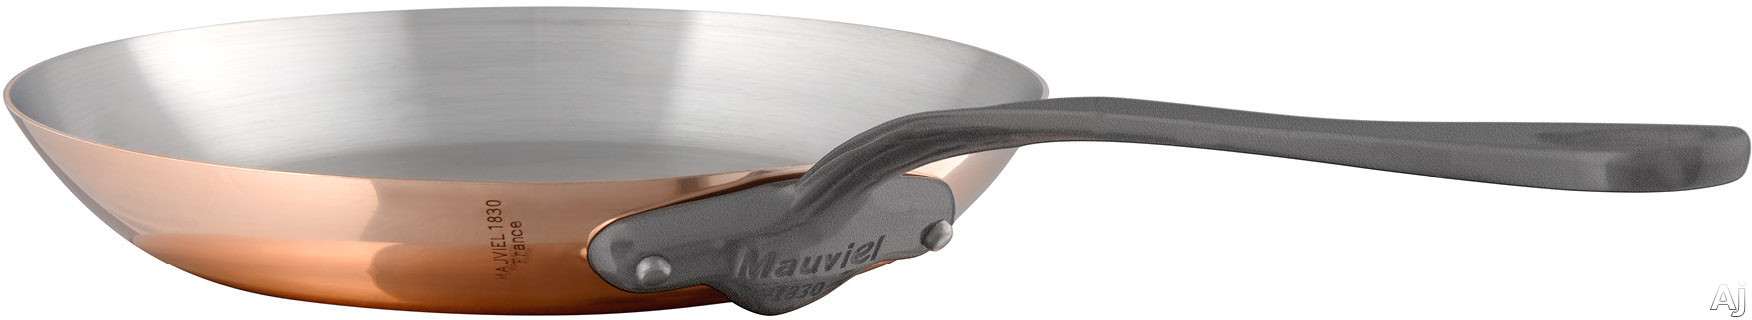 Mauviel 645326 M'150C2 10-1/5 Inch Round Frying Pan with Copper Stainless Steel, High Performance and Non-Reactive